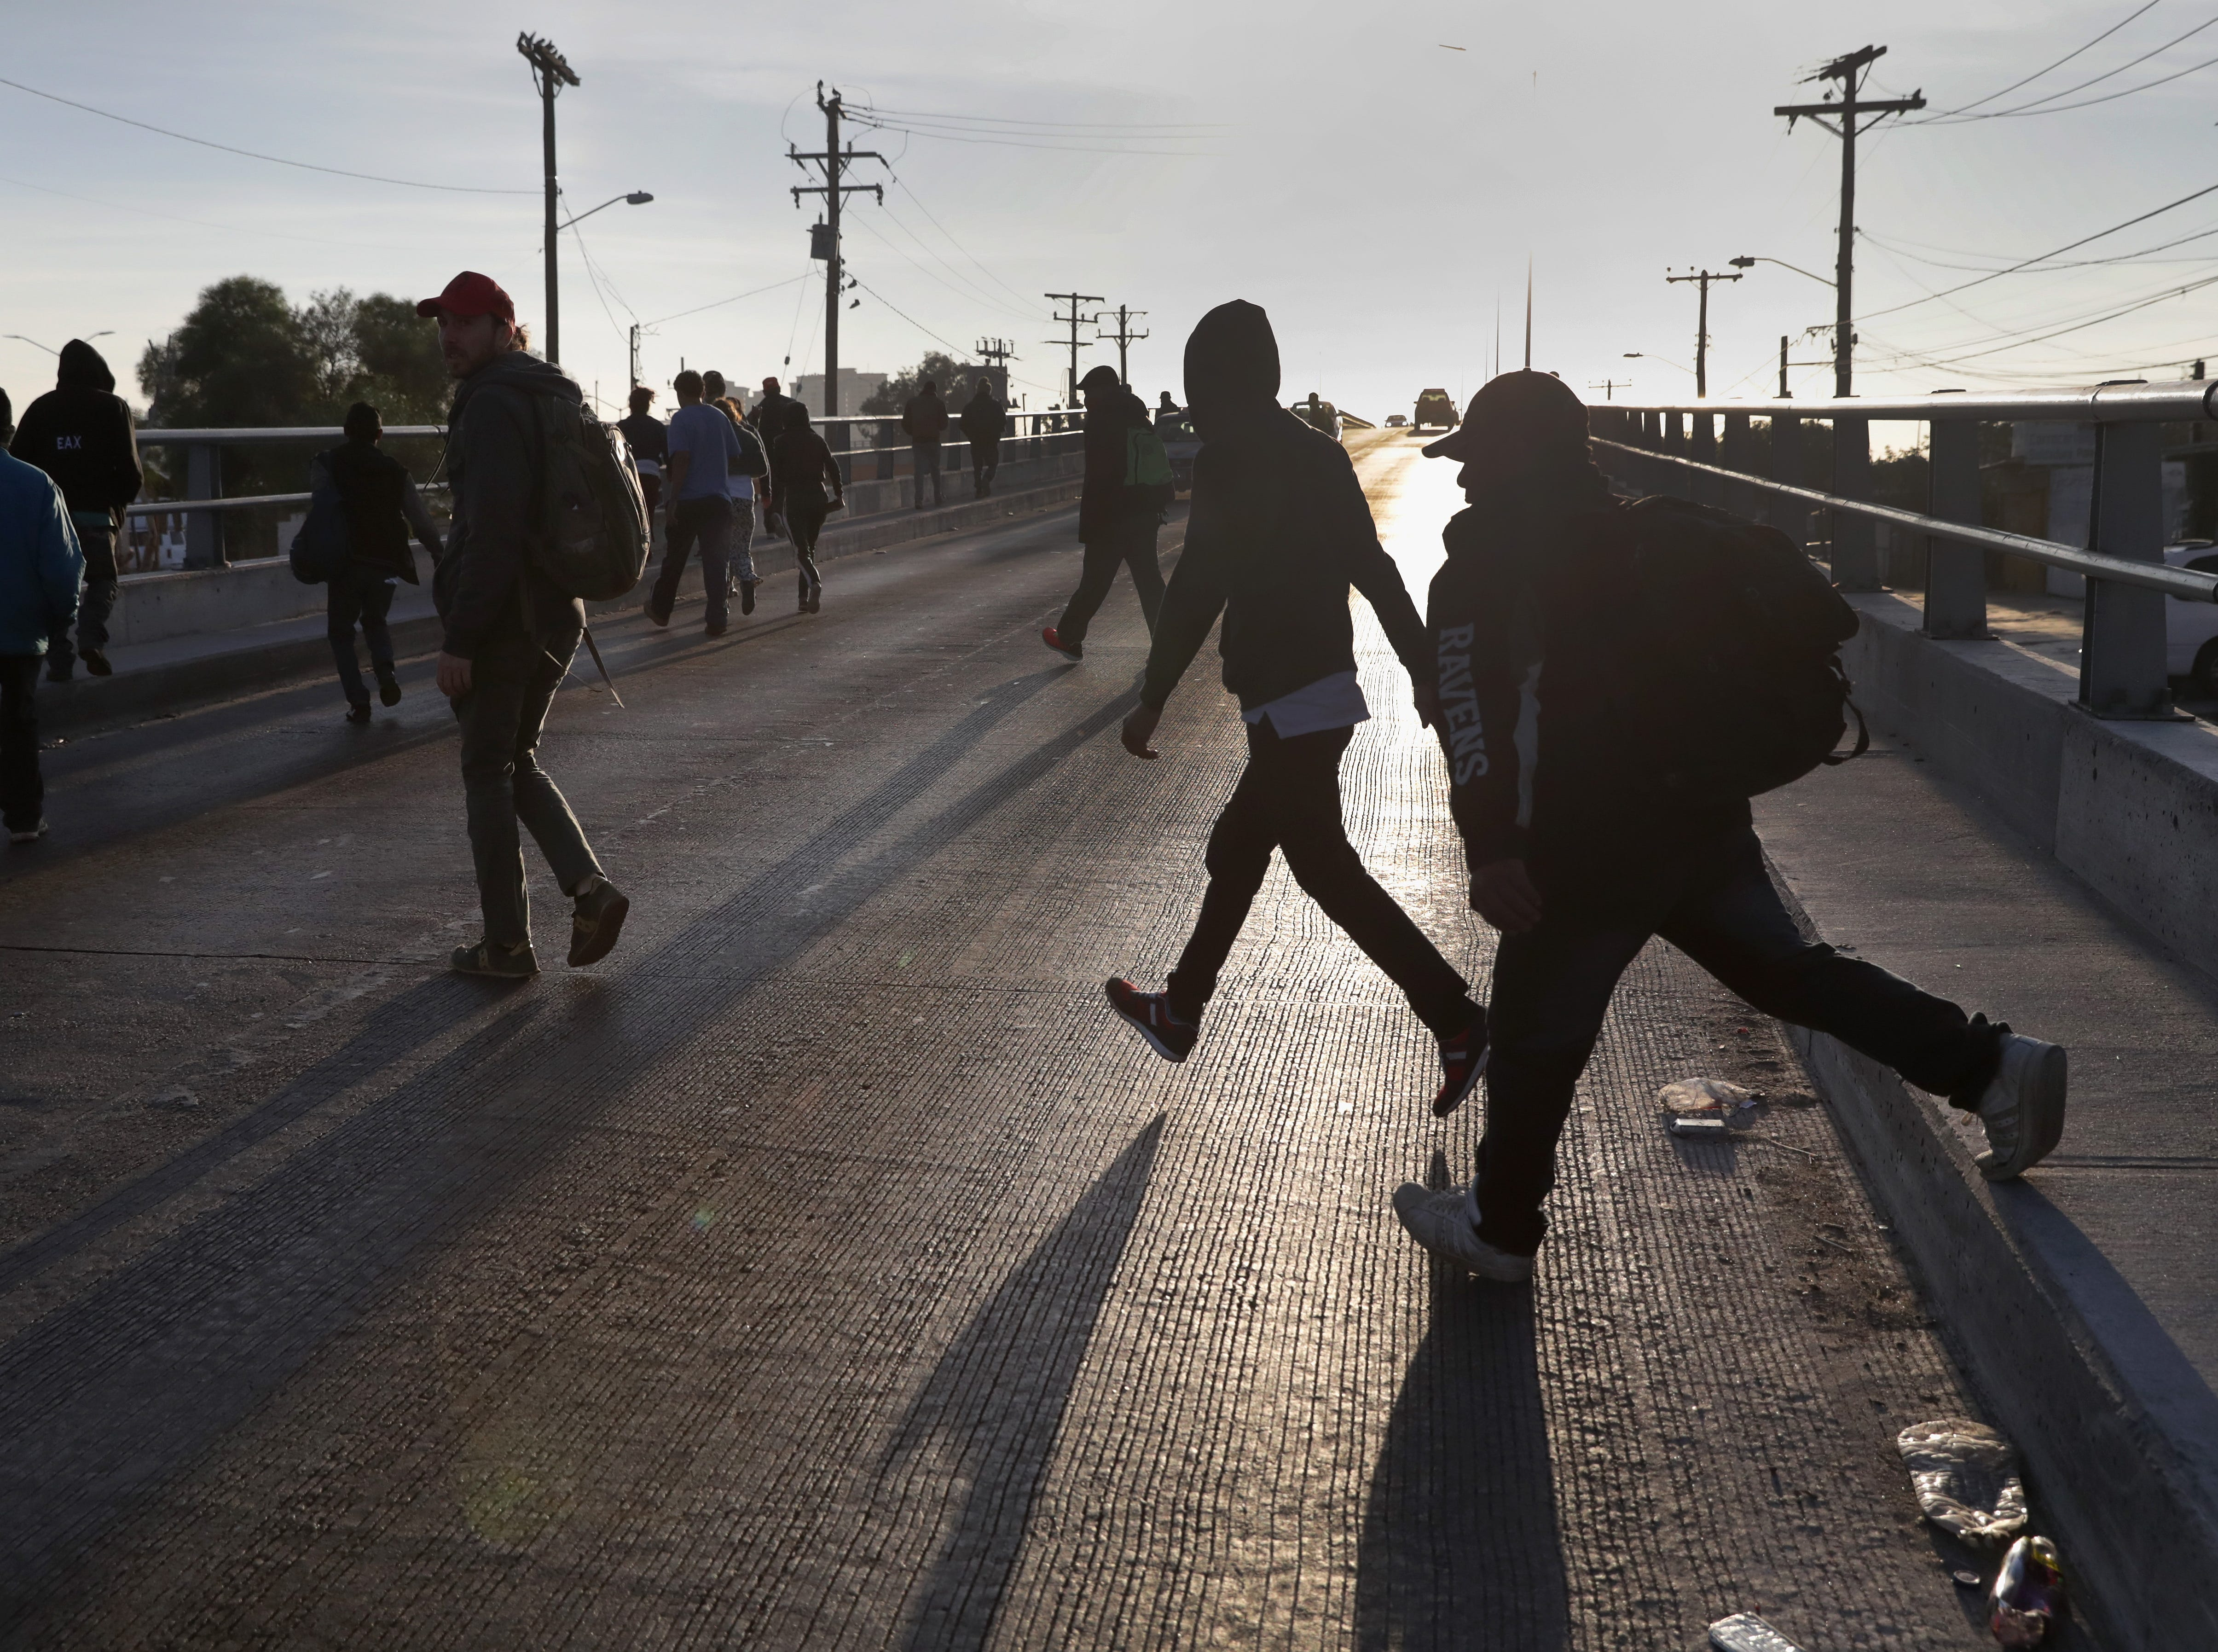 Members of the migrant caravan walk to make requests for political asylum at the U.S.-Mexico border on Nov.17, 2018 in Tijuana, Mexico.